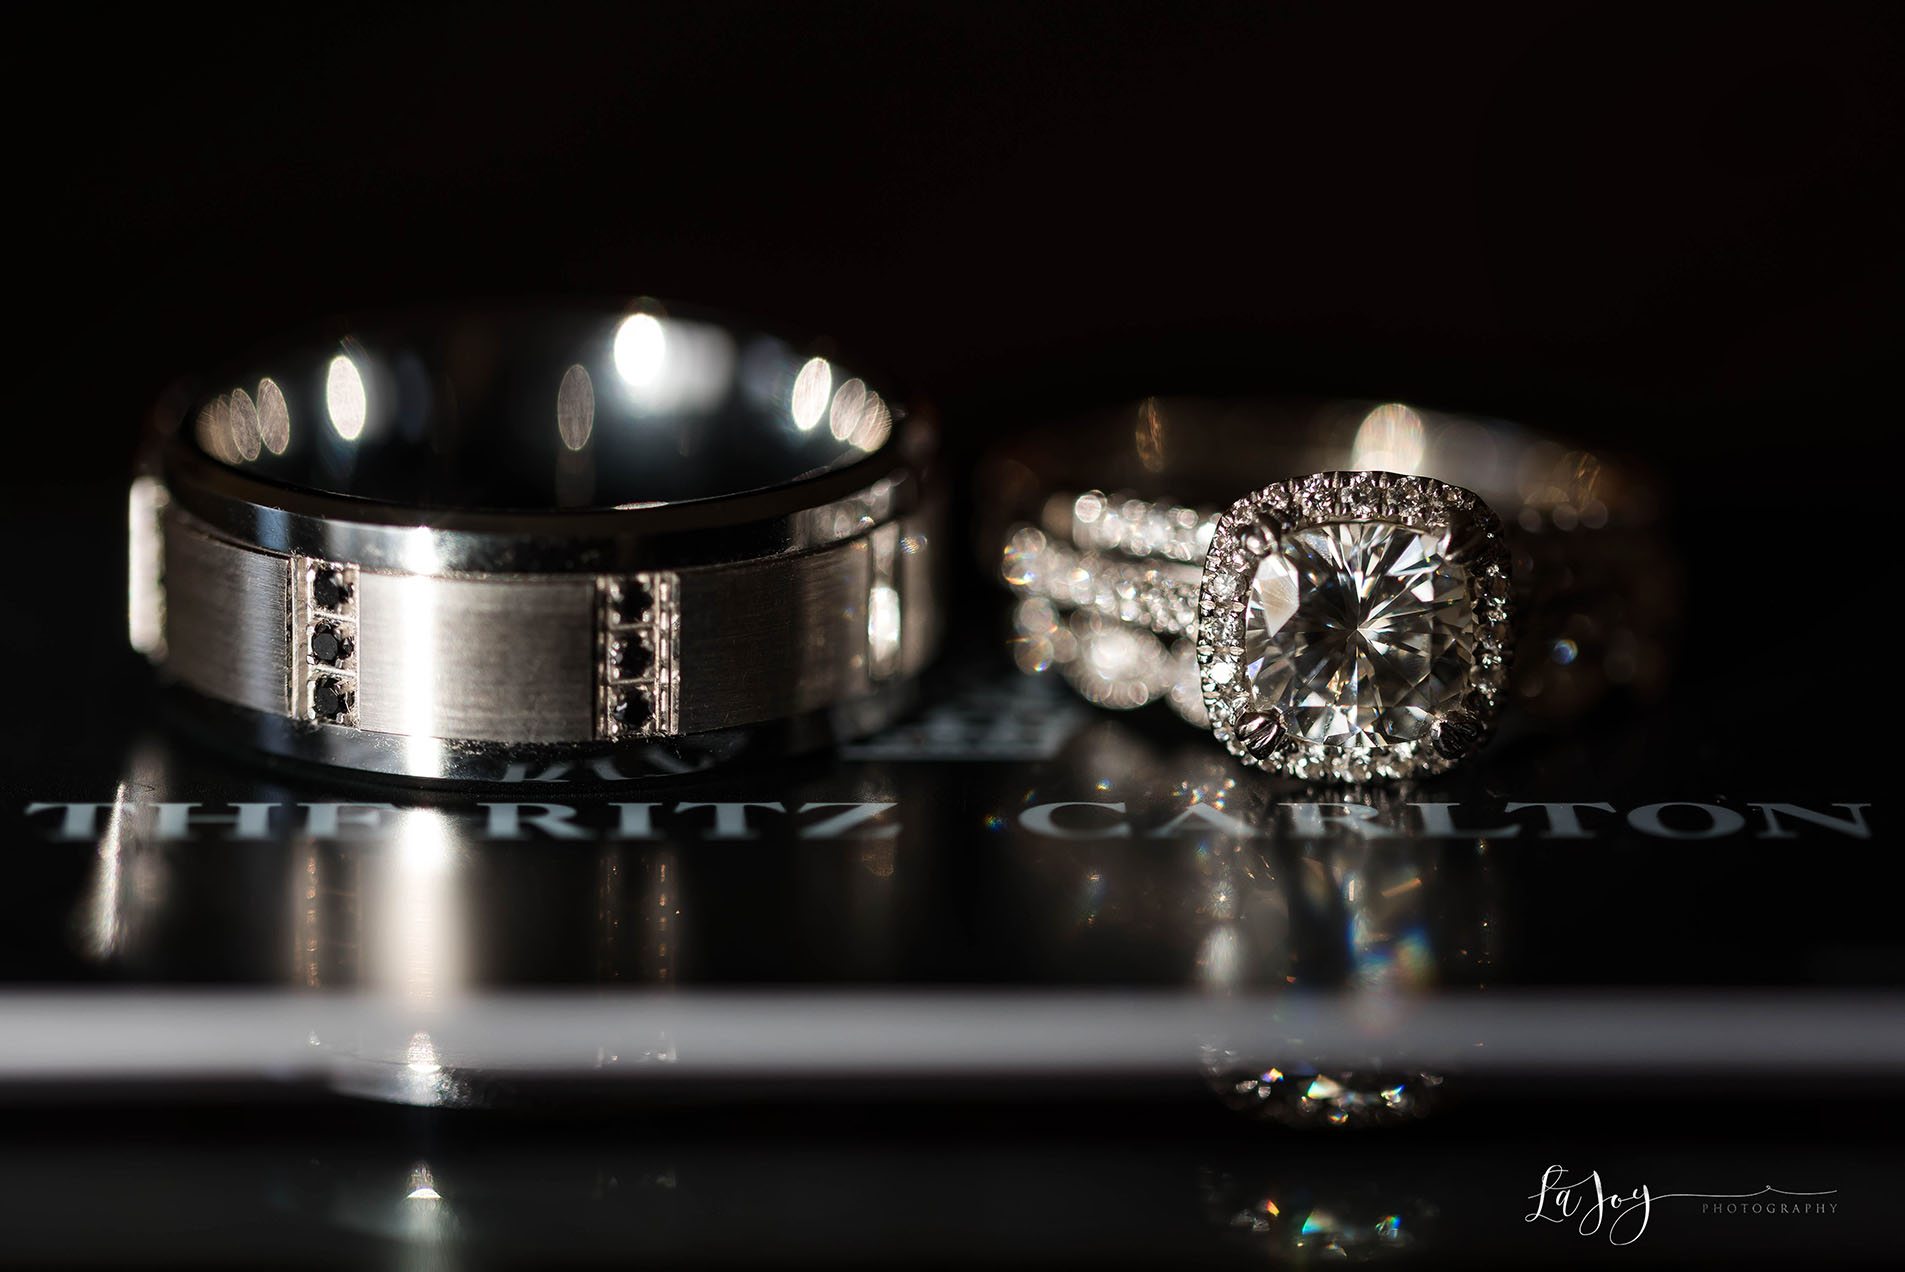 The Ritz Carlton Rings